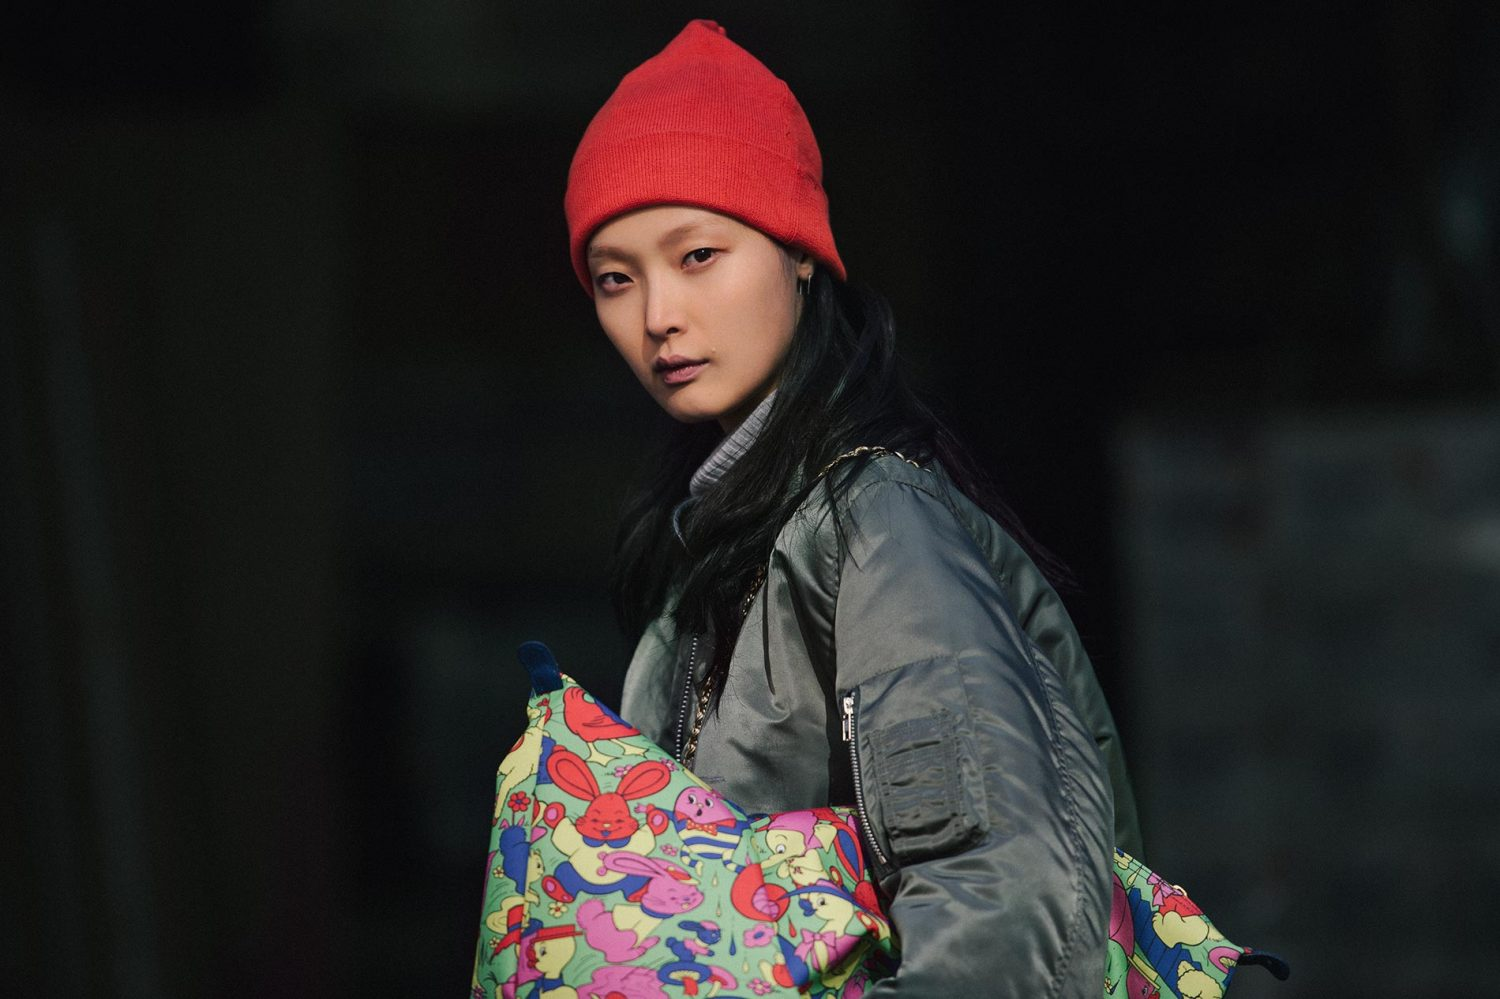 Sung Hee Kim at New York Fashion Week Fall/Winter 2015